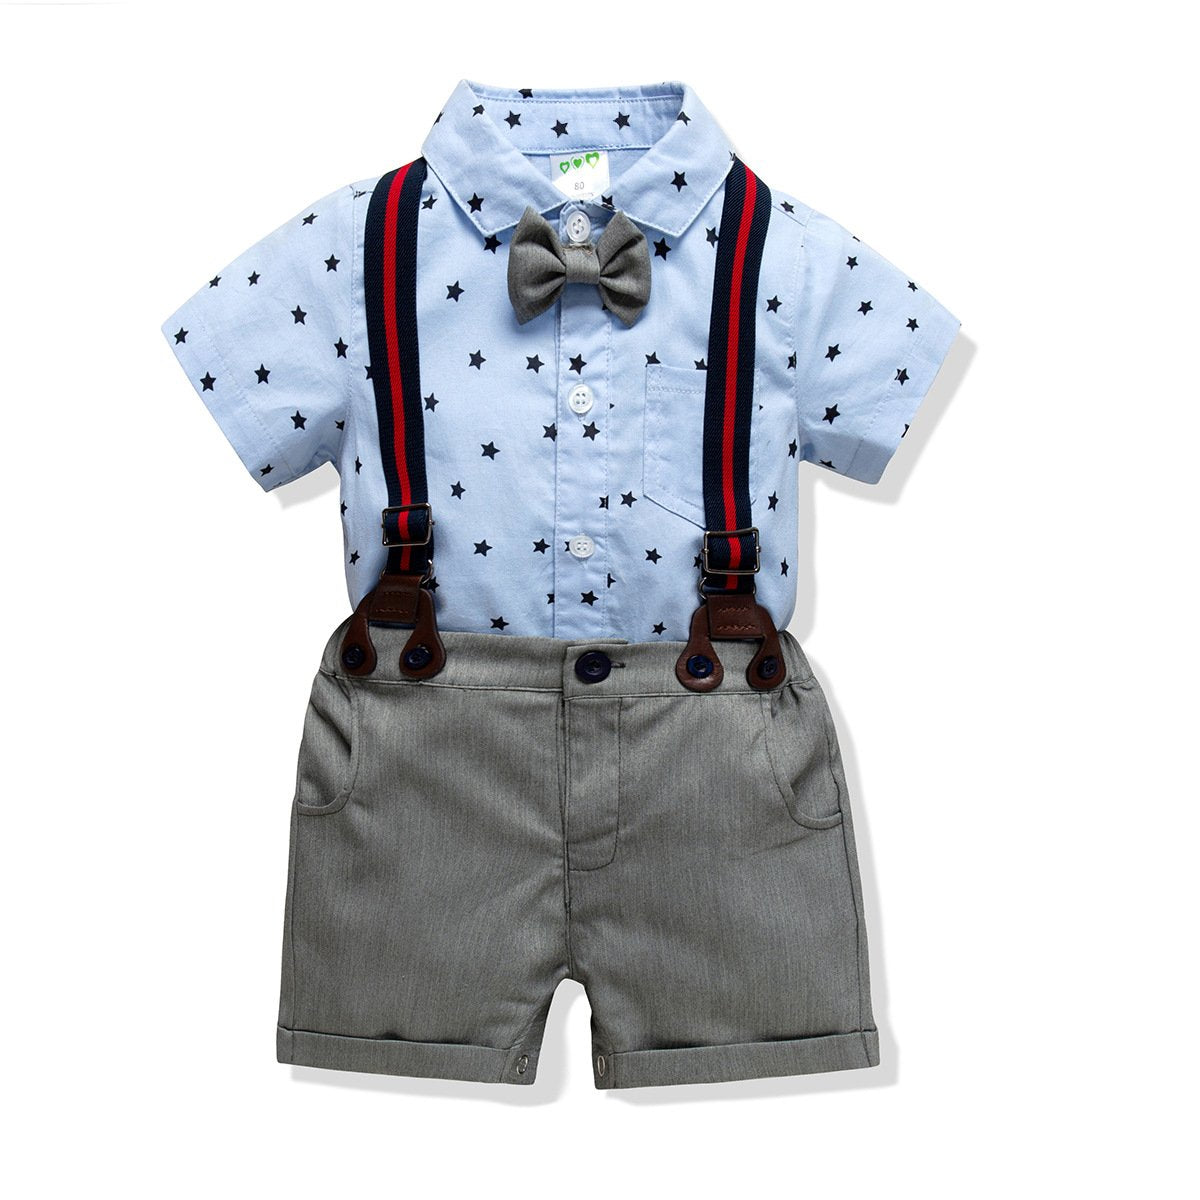 2-Piece Short-sleeve Baby Bodysuit and shorts - childbling